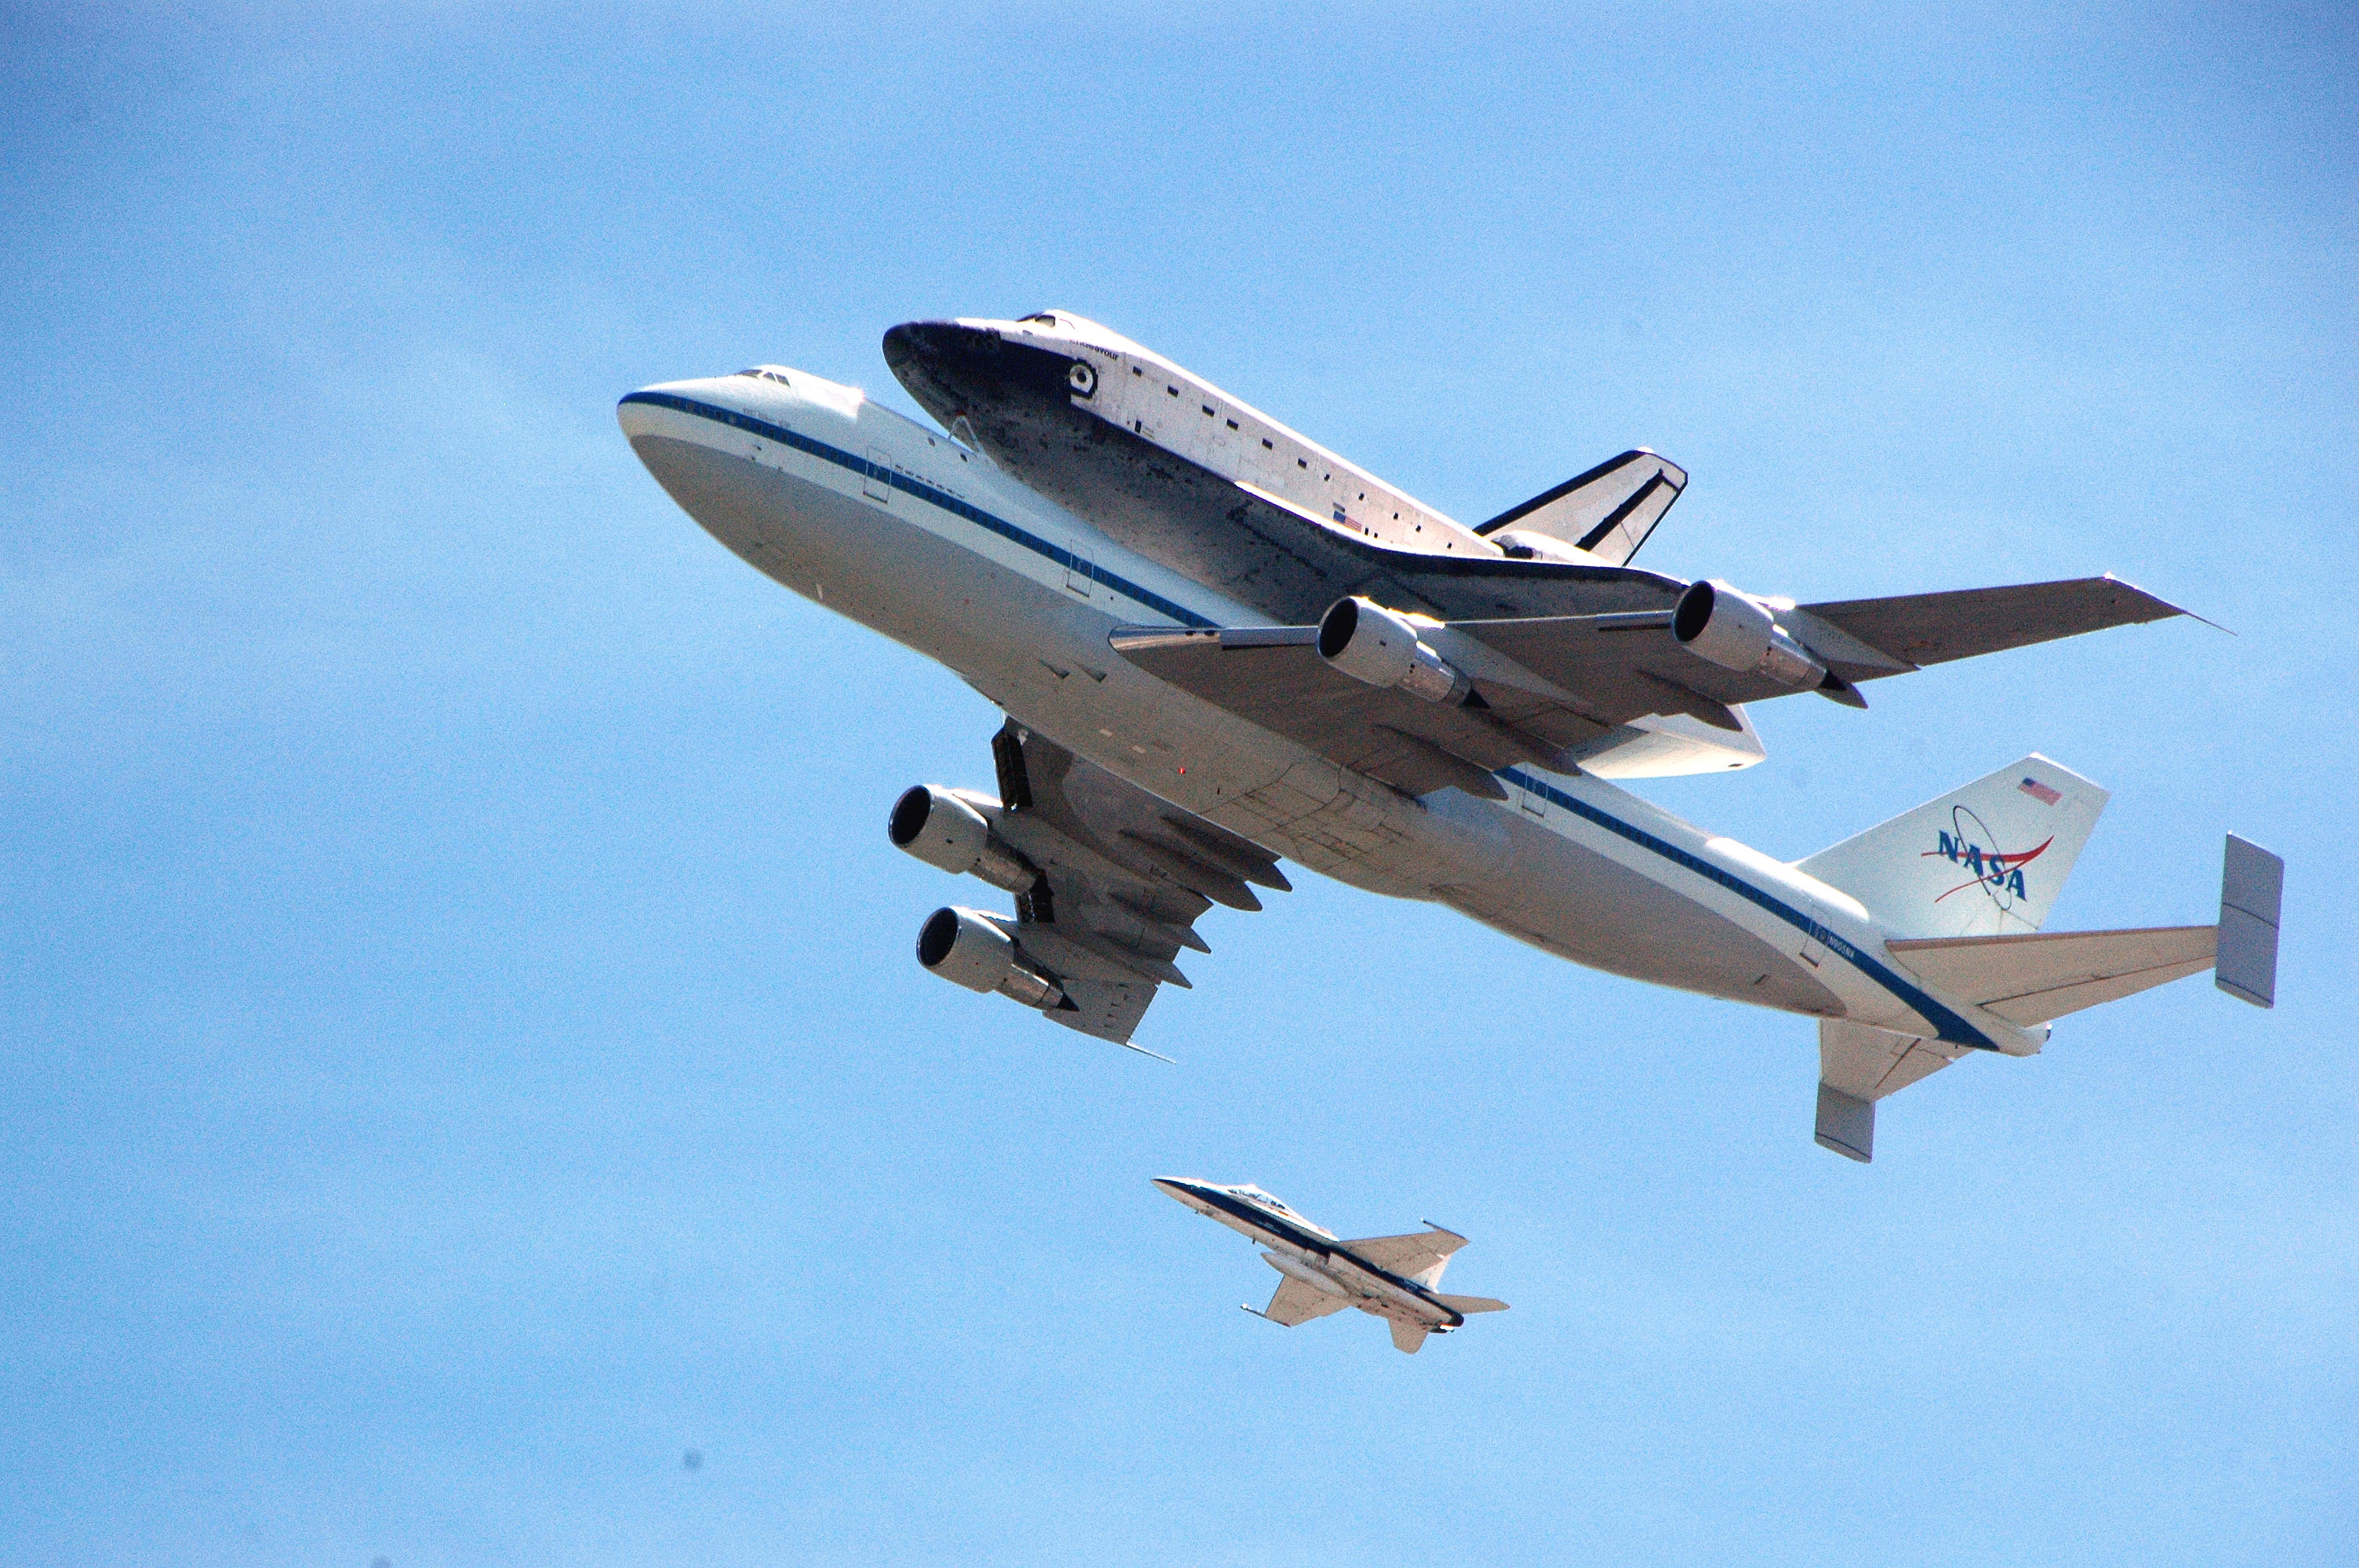 Space shuttle Endeavour on its last mission to the CSC. Photo: Luis Inzunza/Metro